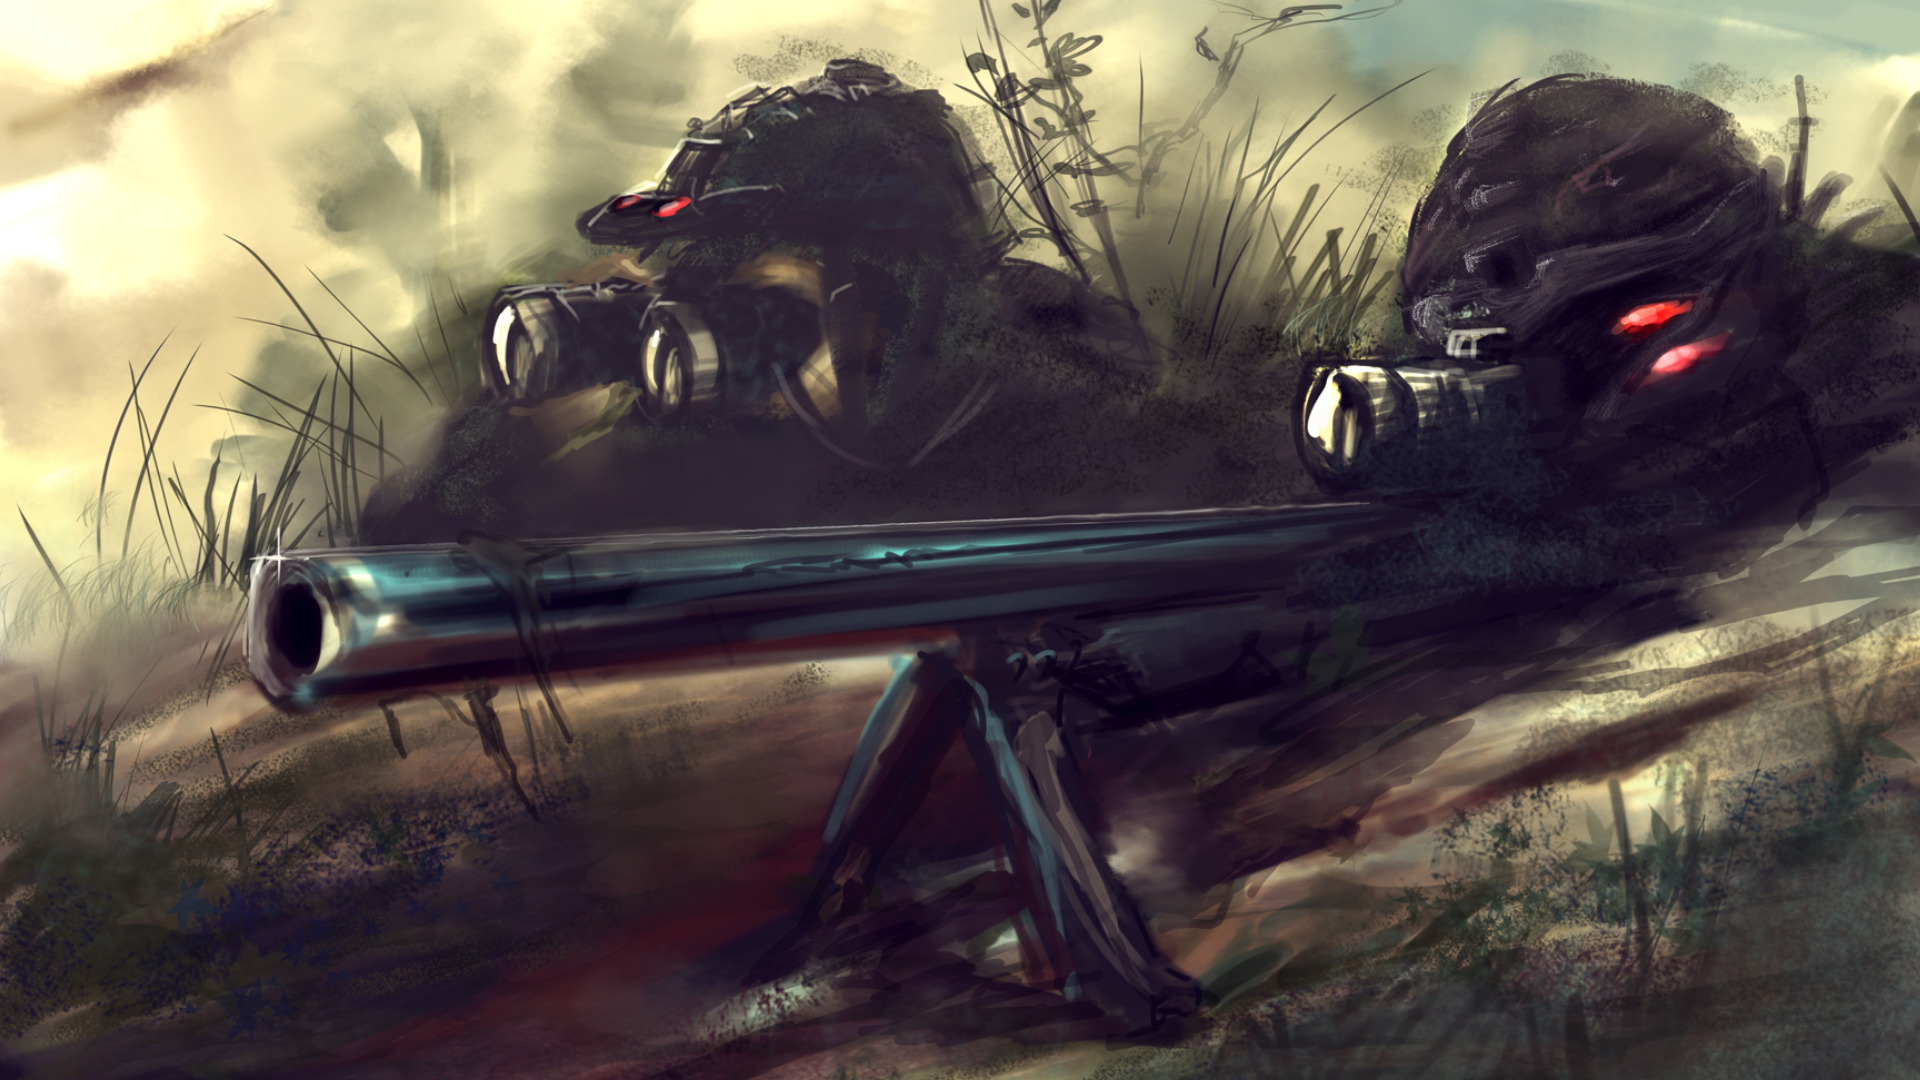 Sniper Computer Wallpapers Desktop Backgrounds 1920x1080 ID 1920x1080